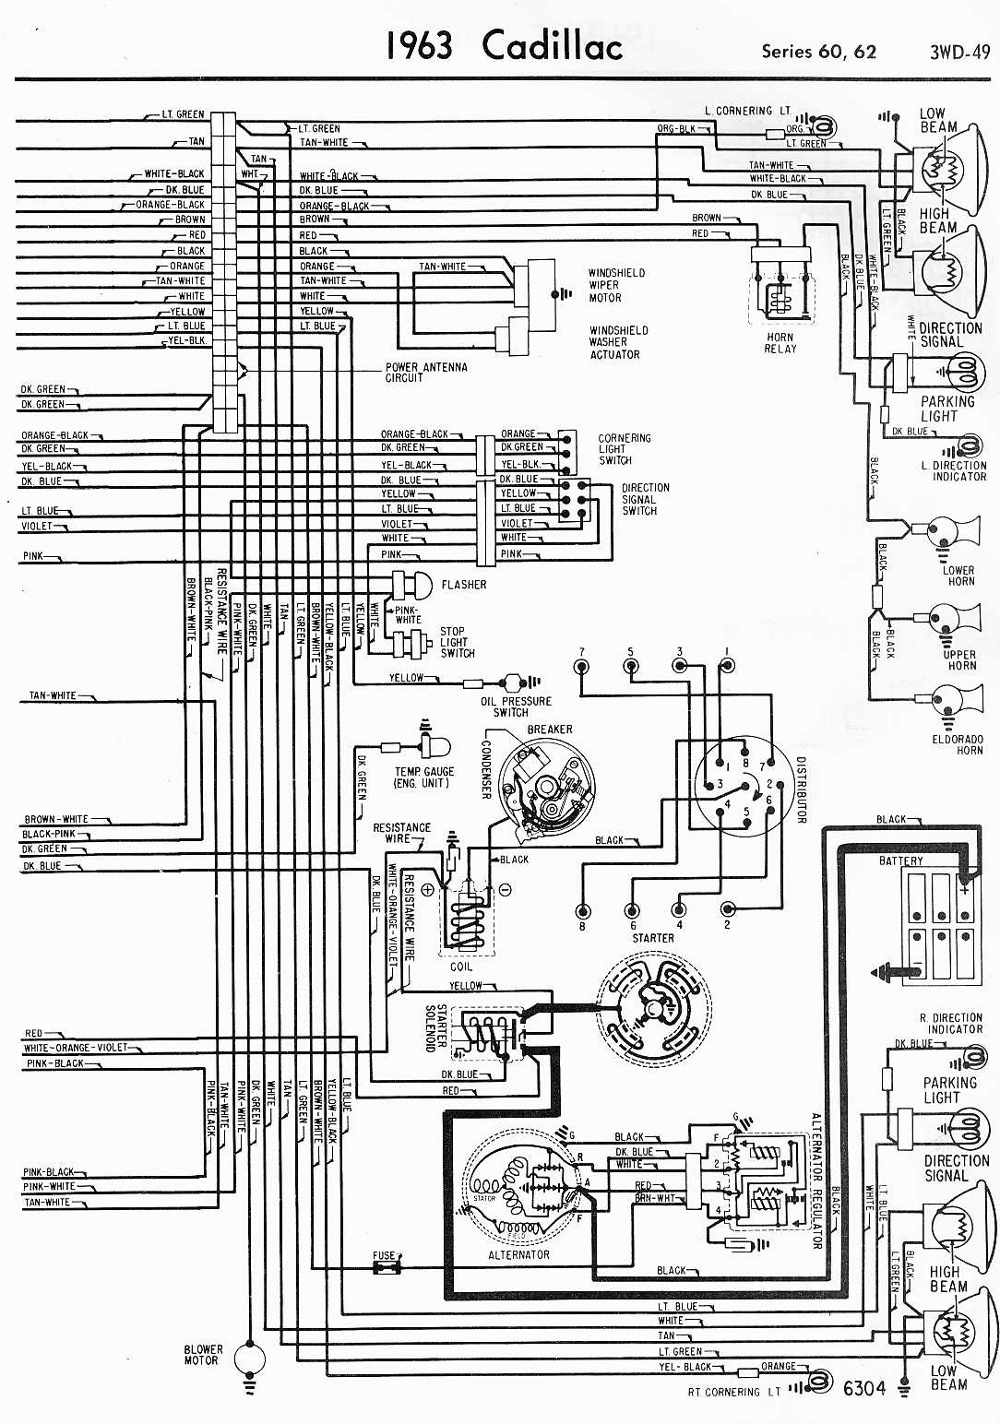 medium resolution of bose stereo wiring diagram 93 cadillac wiring library1959 cadillac radio diagram 1959 get free image about